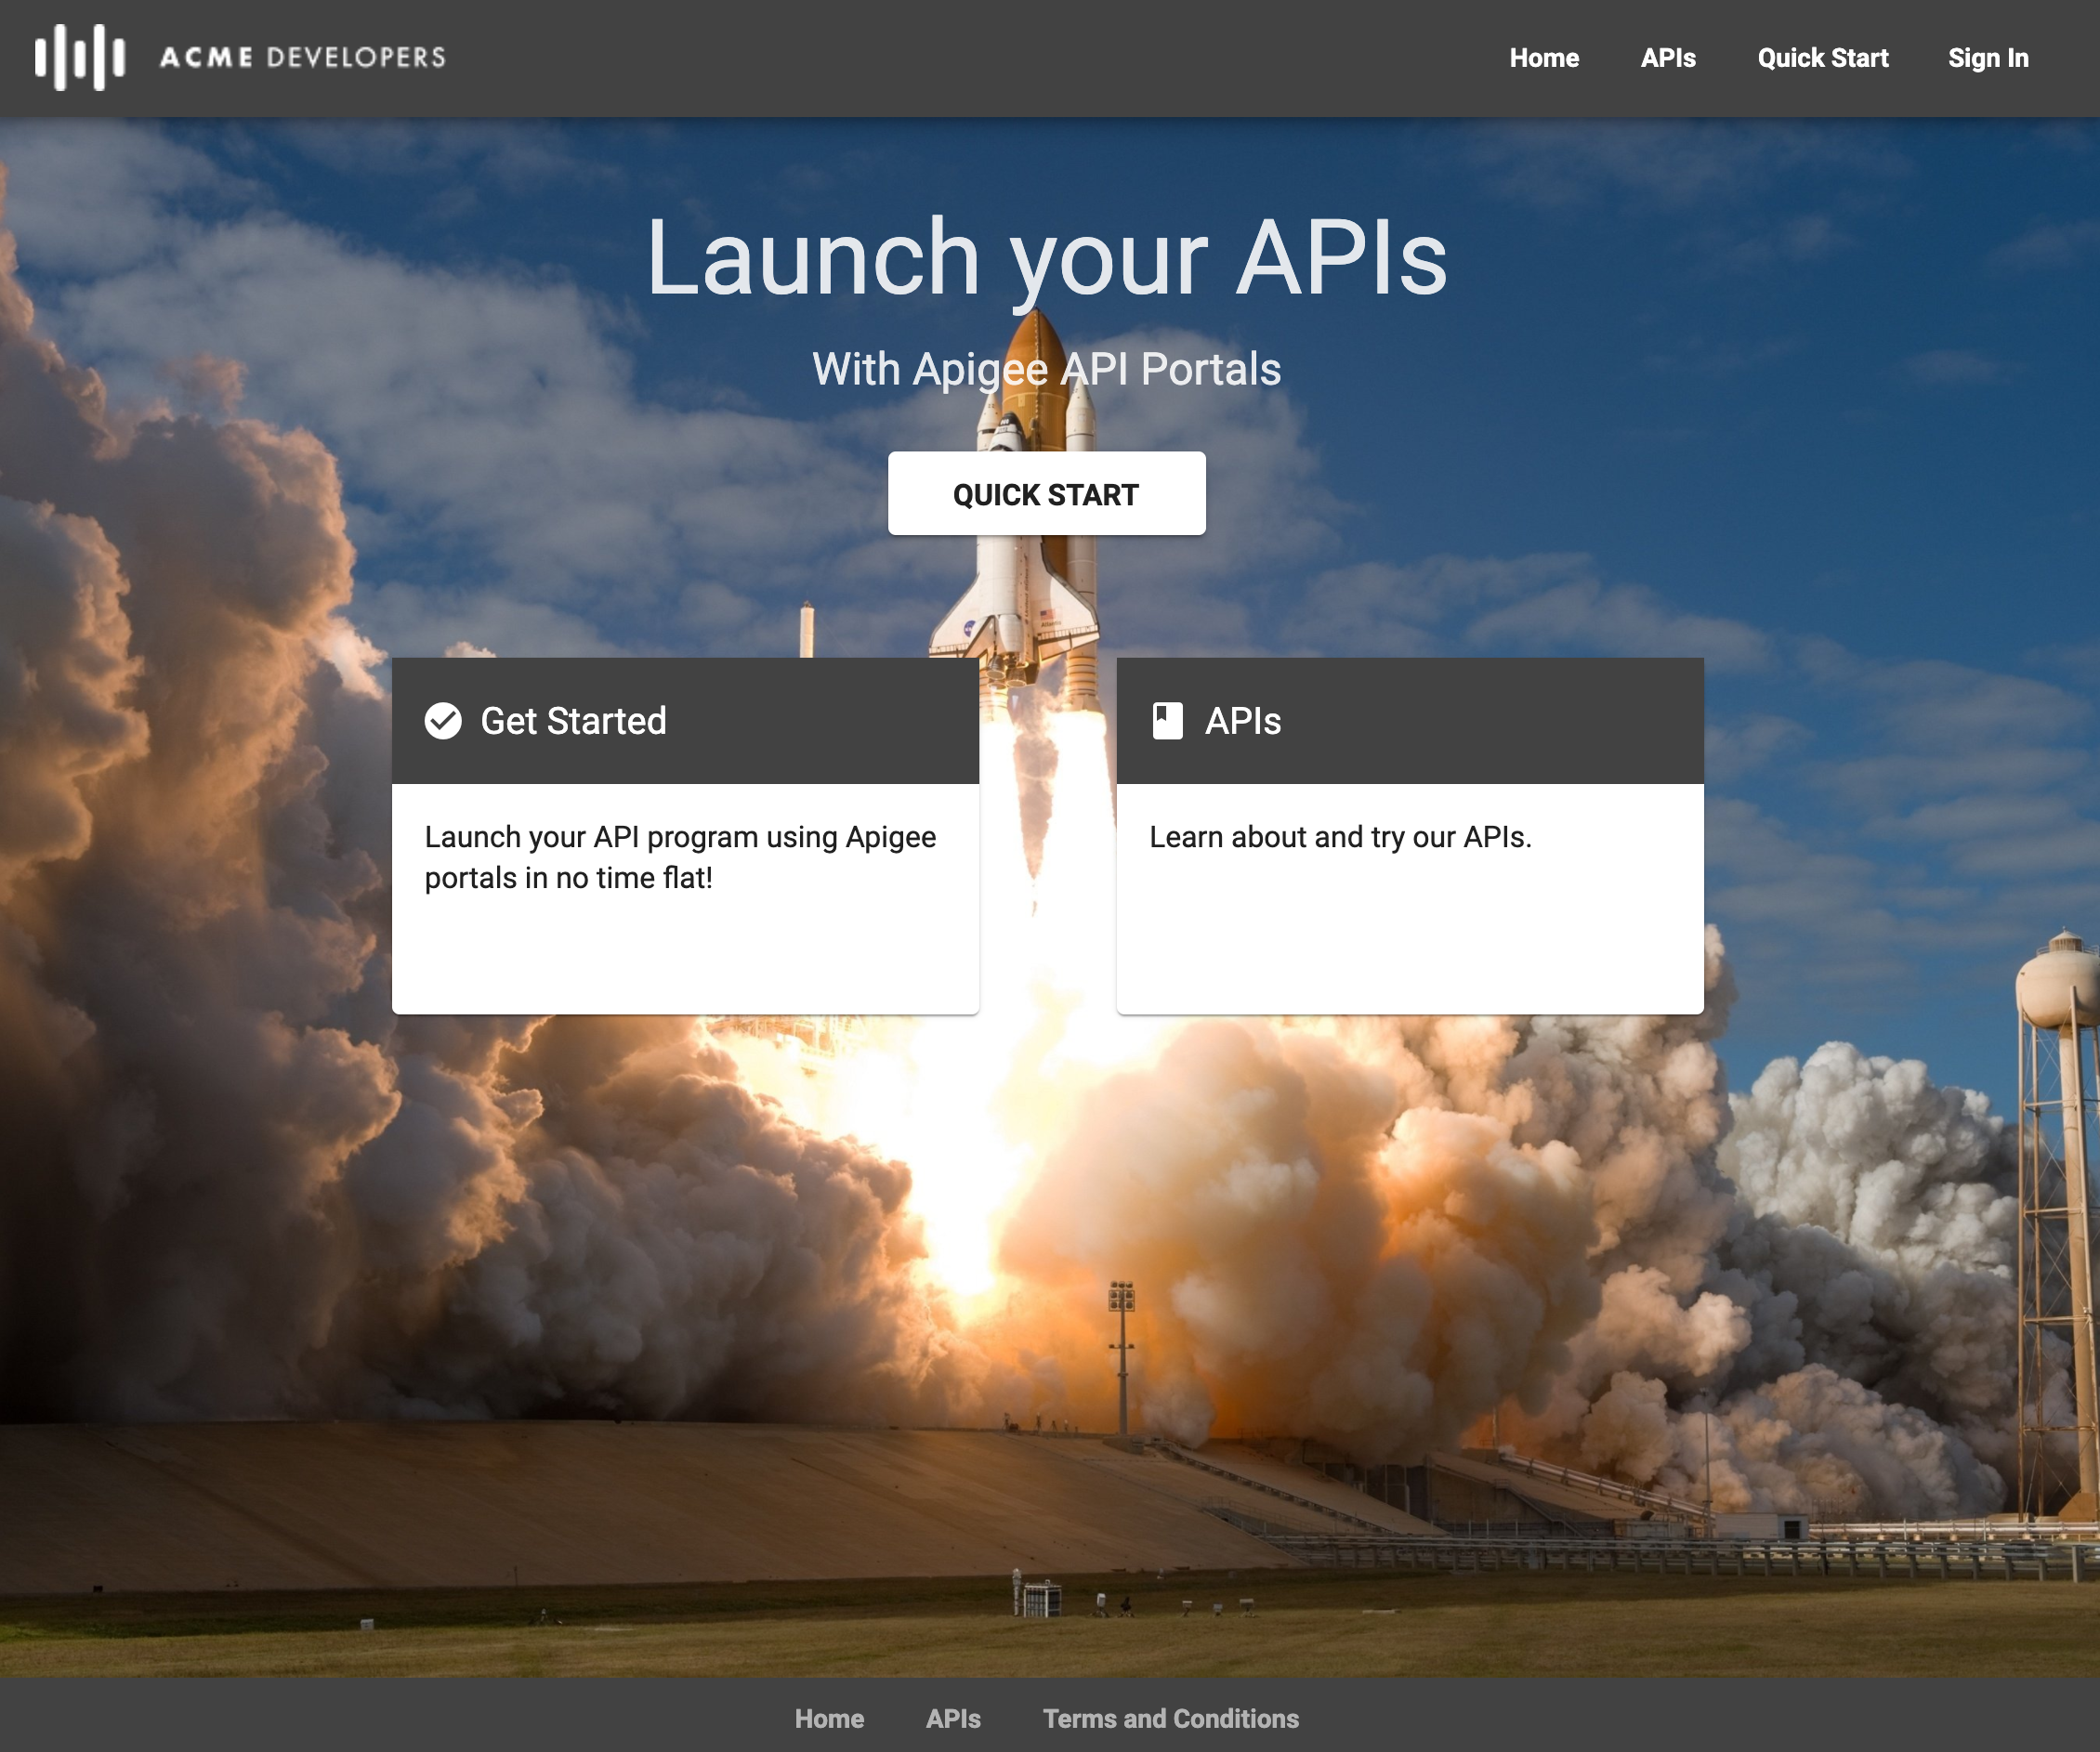 The default integrated portal page with links labeled Quick start, get started, and APIs.